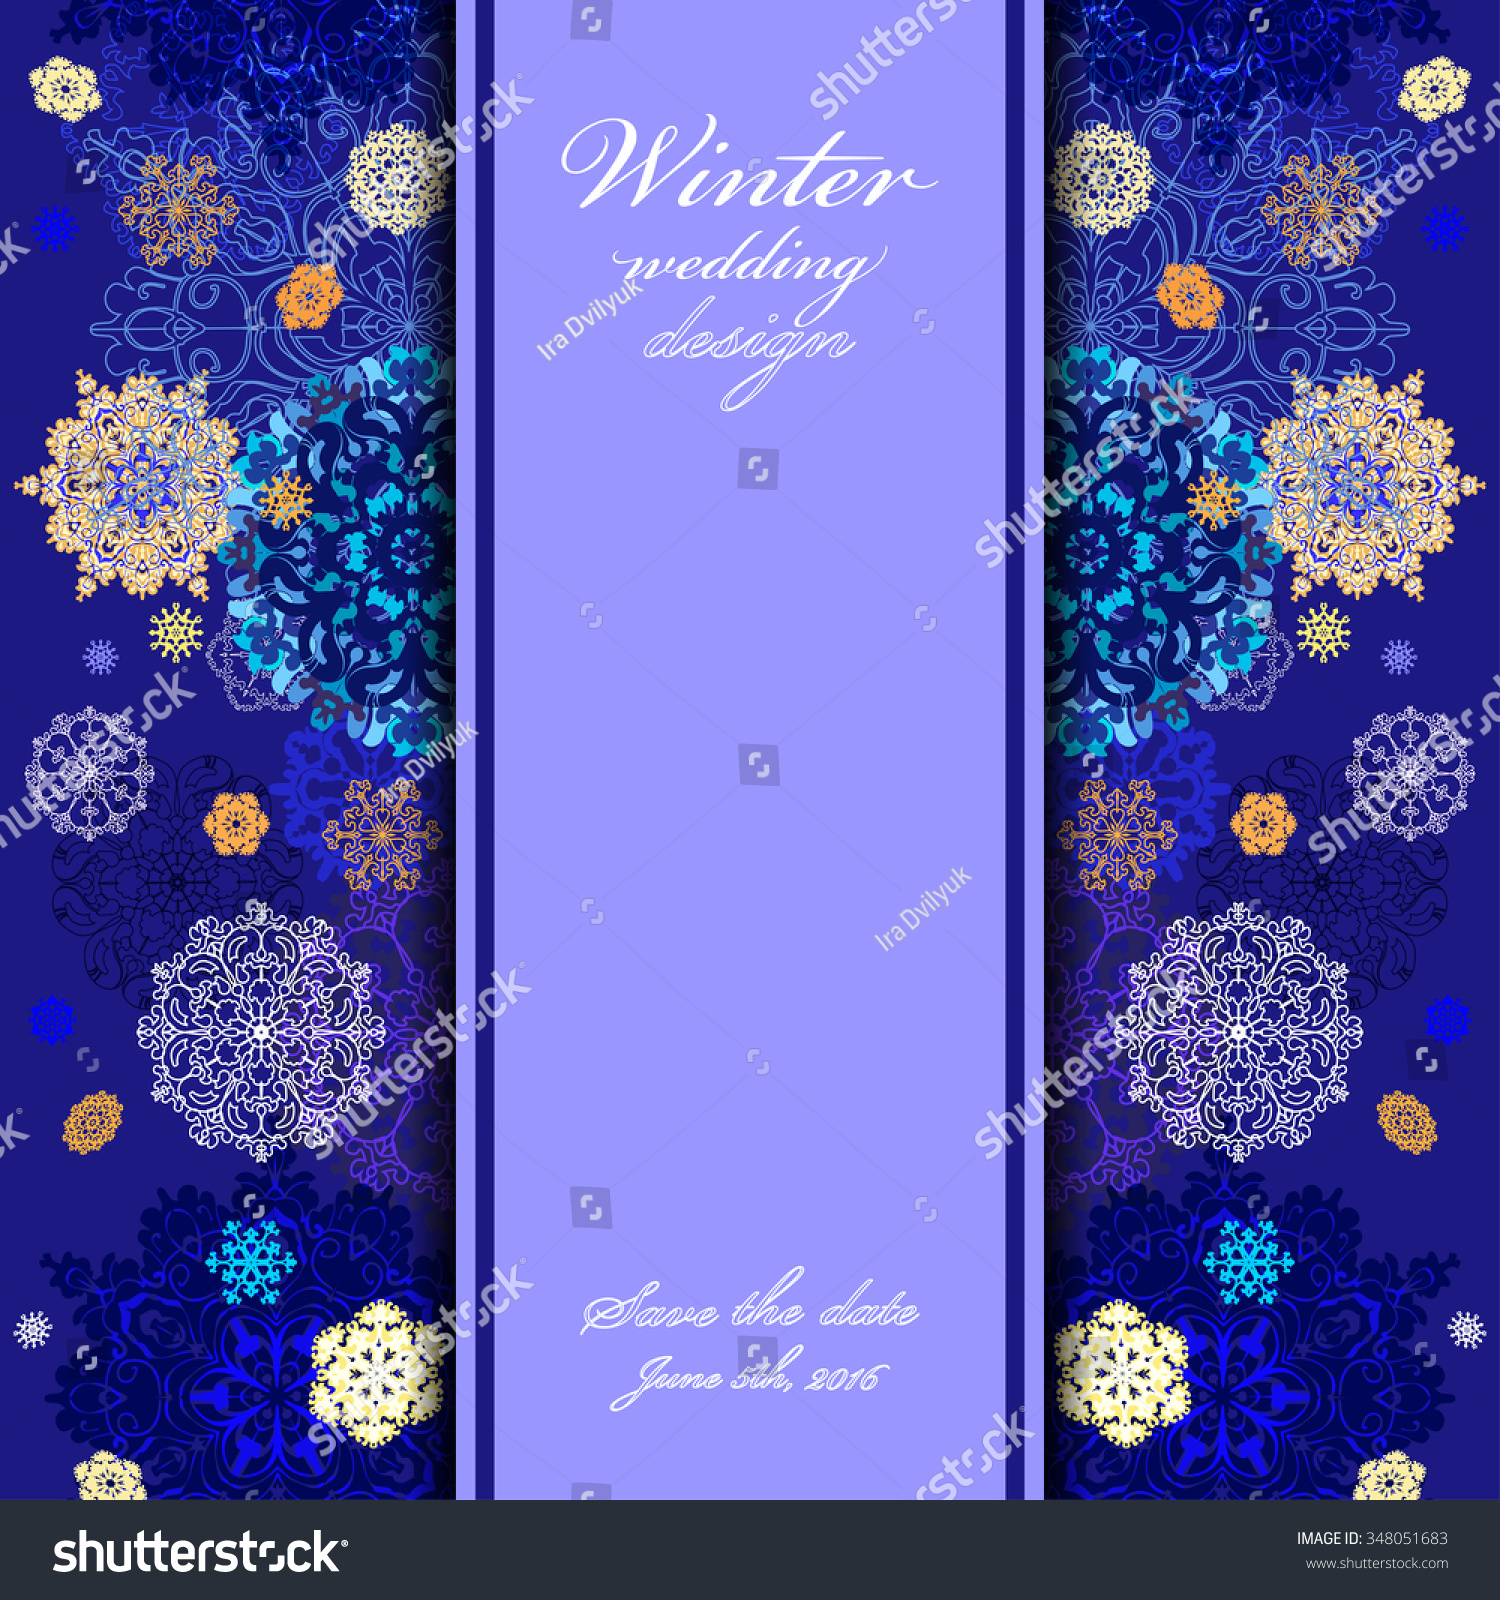 Background image vertical center - Winter Abstract Design With Gold Blue And White Snowflakes And Stars And Dark Blue Background